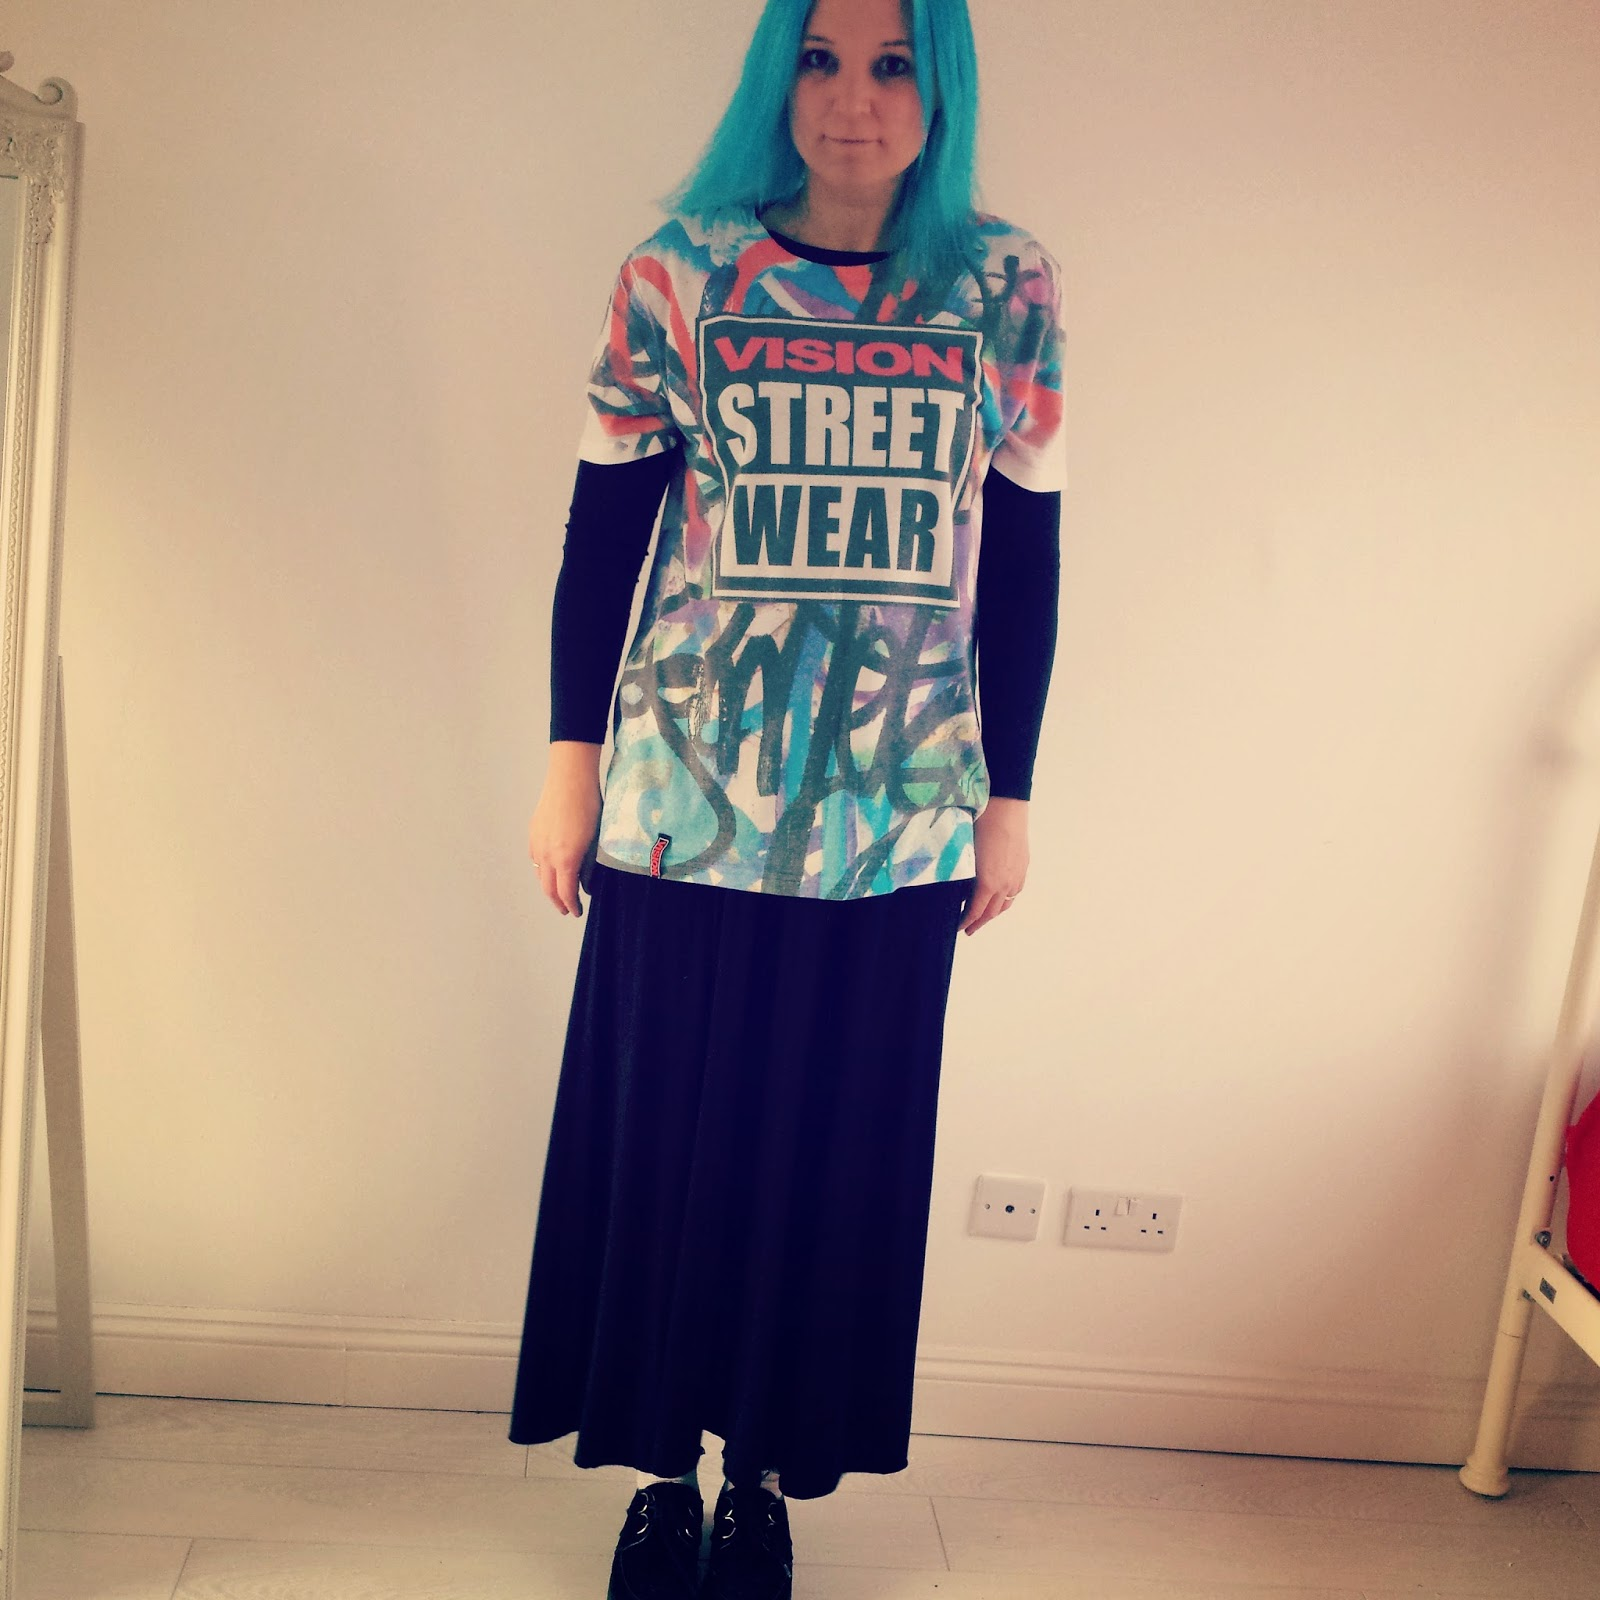 There are 12 vision street wear shoes images in the gallery - All Clothing From Vision Streetwear Topshop 8ball Primark American Apparel And Undergrond At Office Shoes